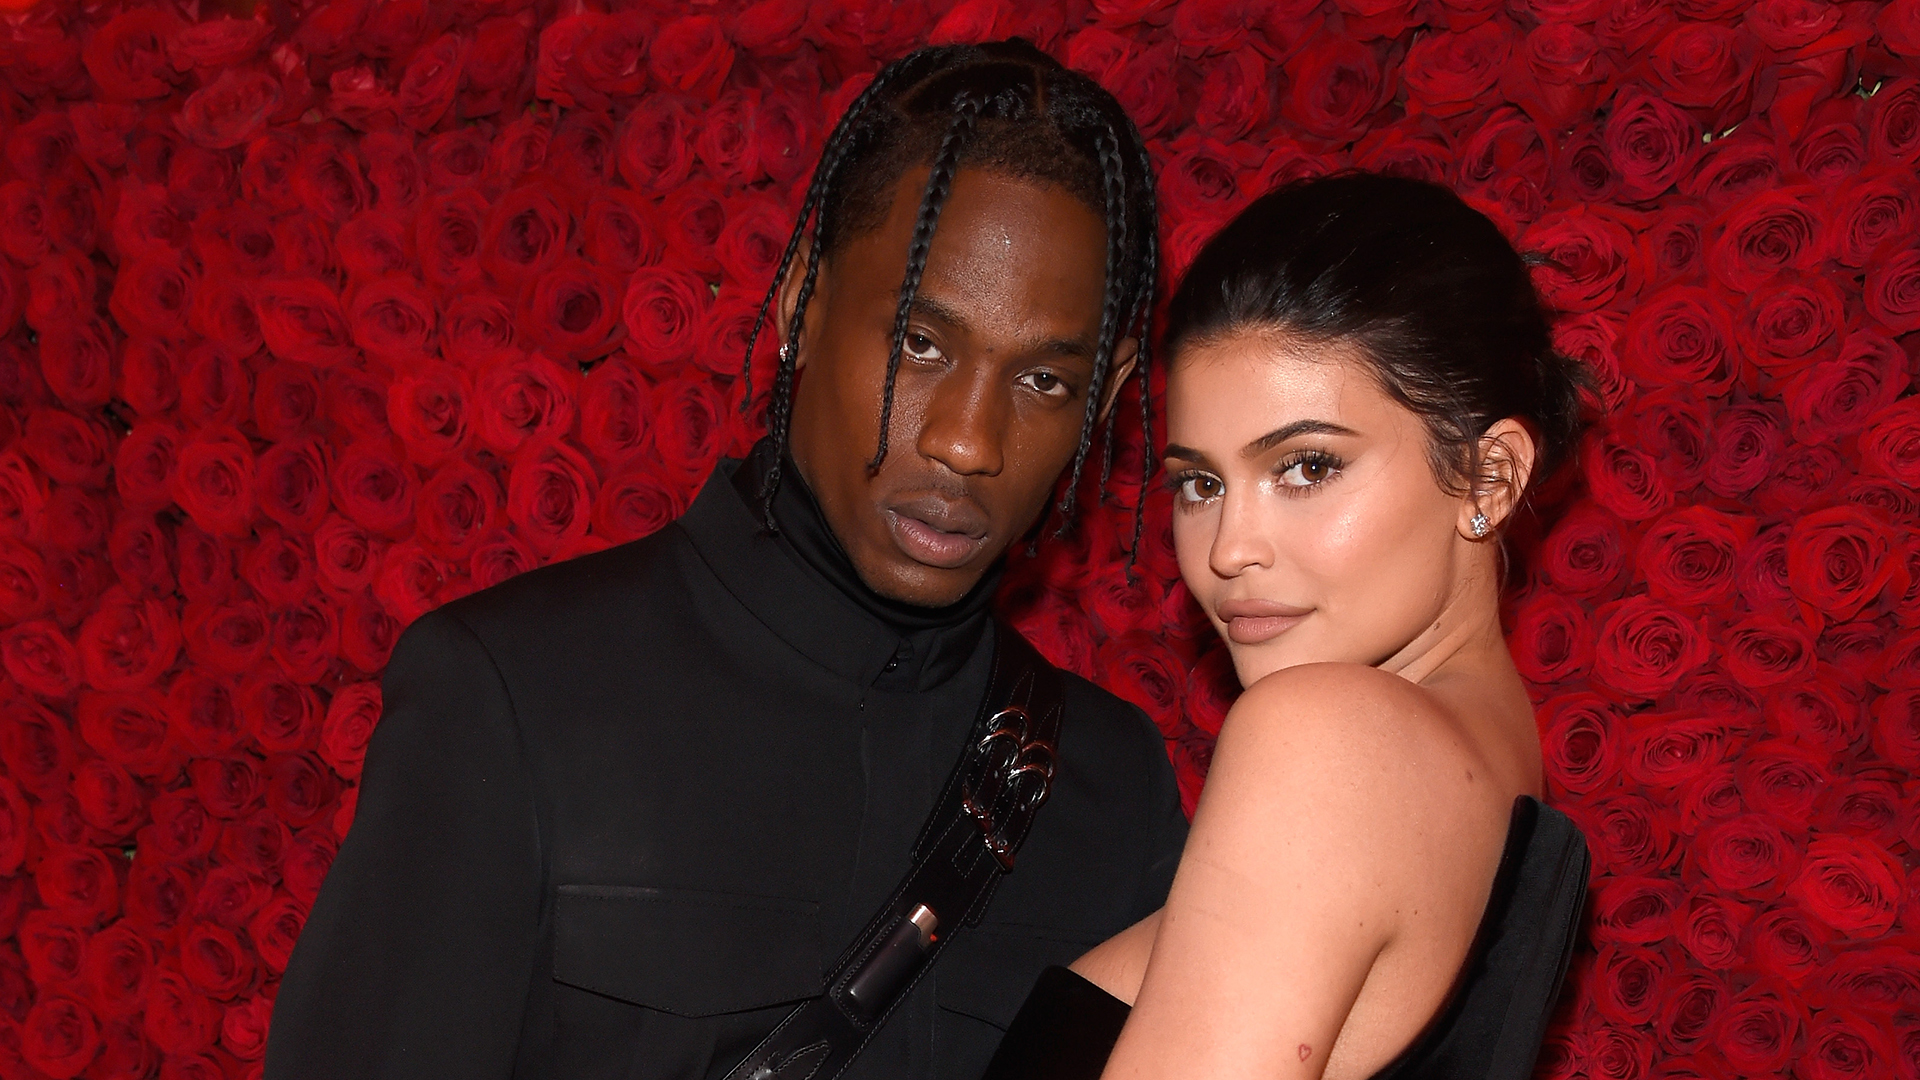 Kylie Jenner accuses Travis Scott of cheating